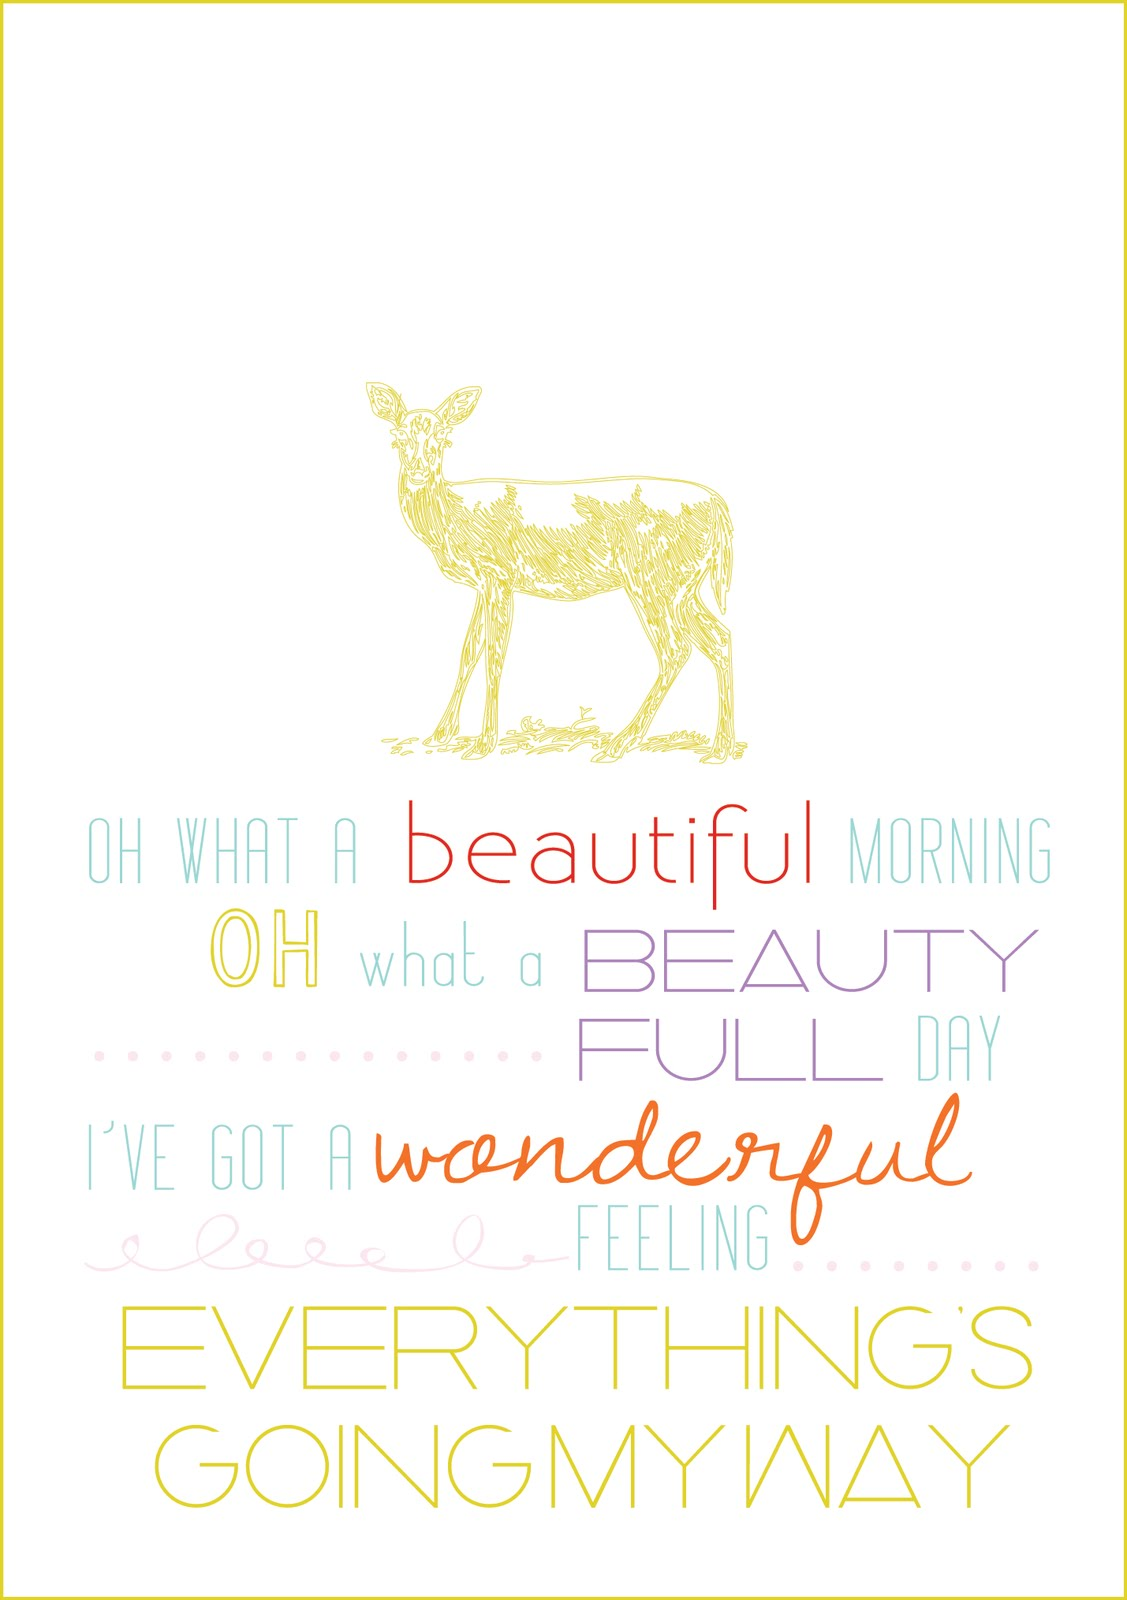 sissyprint: Quotable Monday  Oh what a beautiful morning!